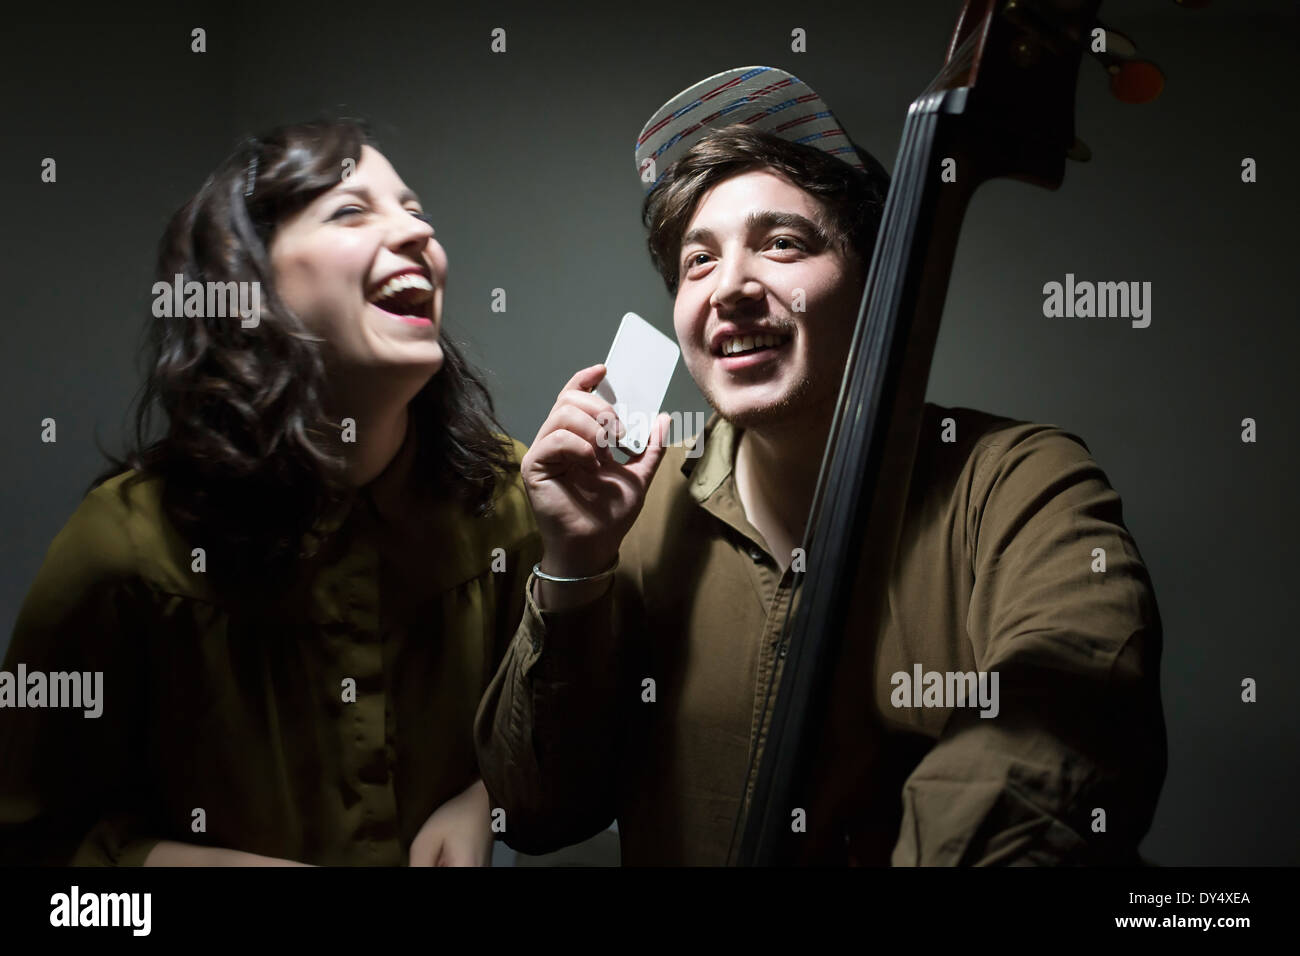 Young musicians with double bass and smartphone, laughing - Stock Image